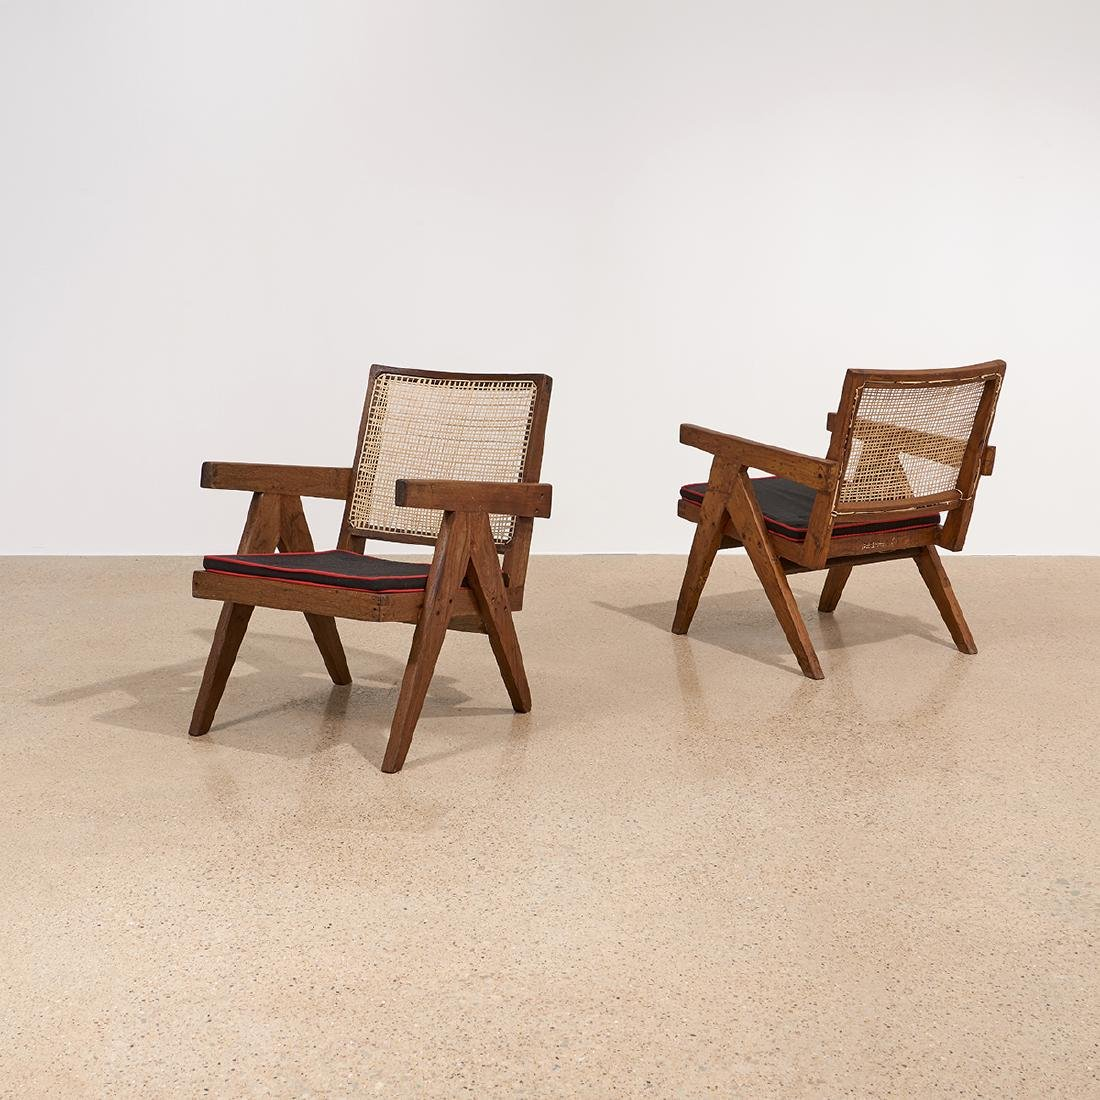 Pierre Jeanneret Low Lounge Chairs, pair